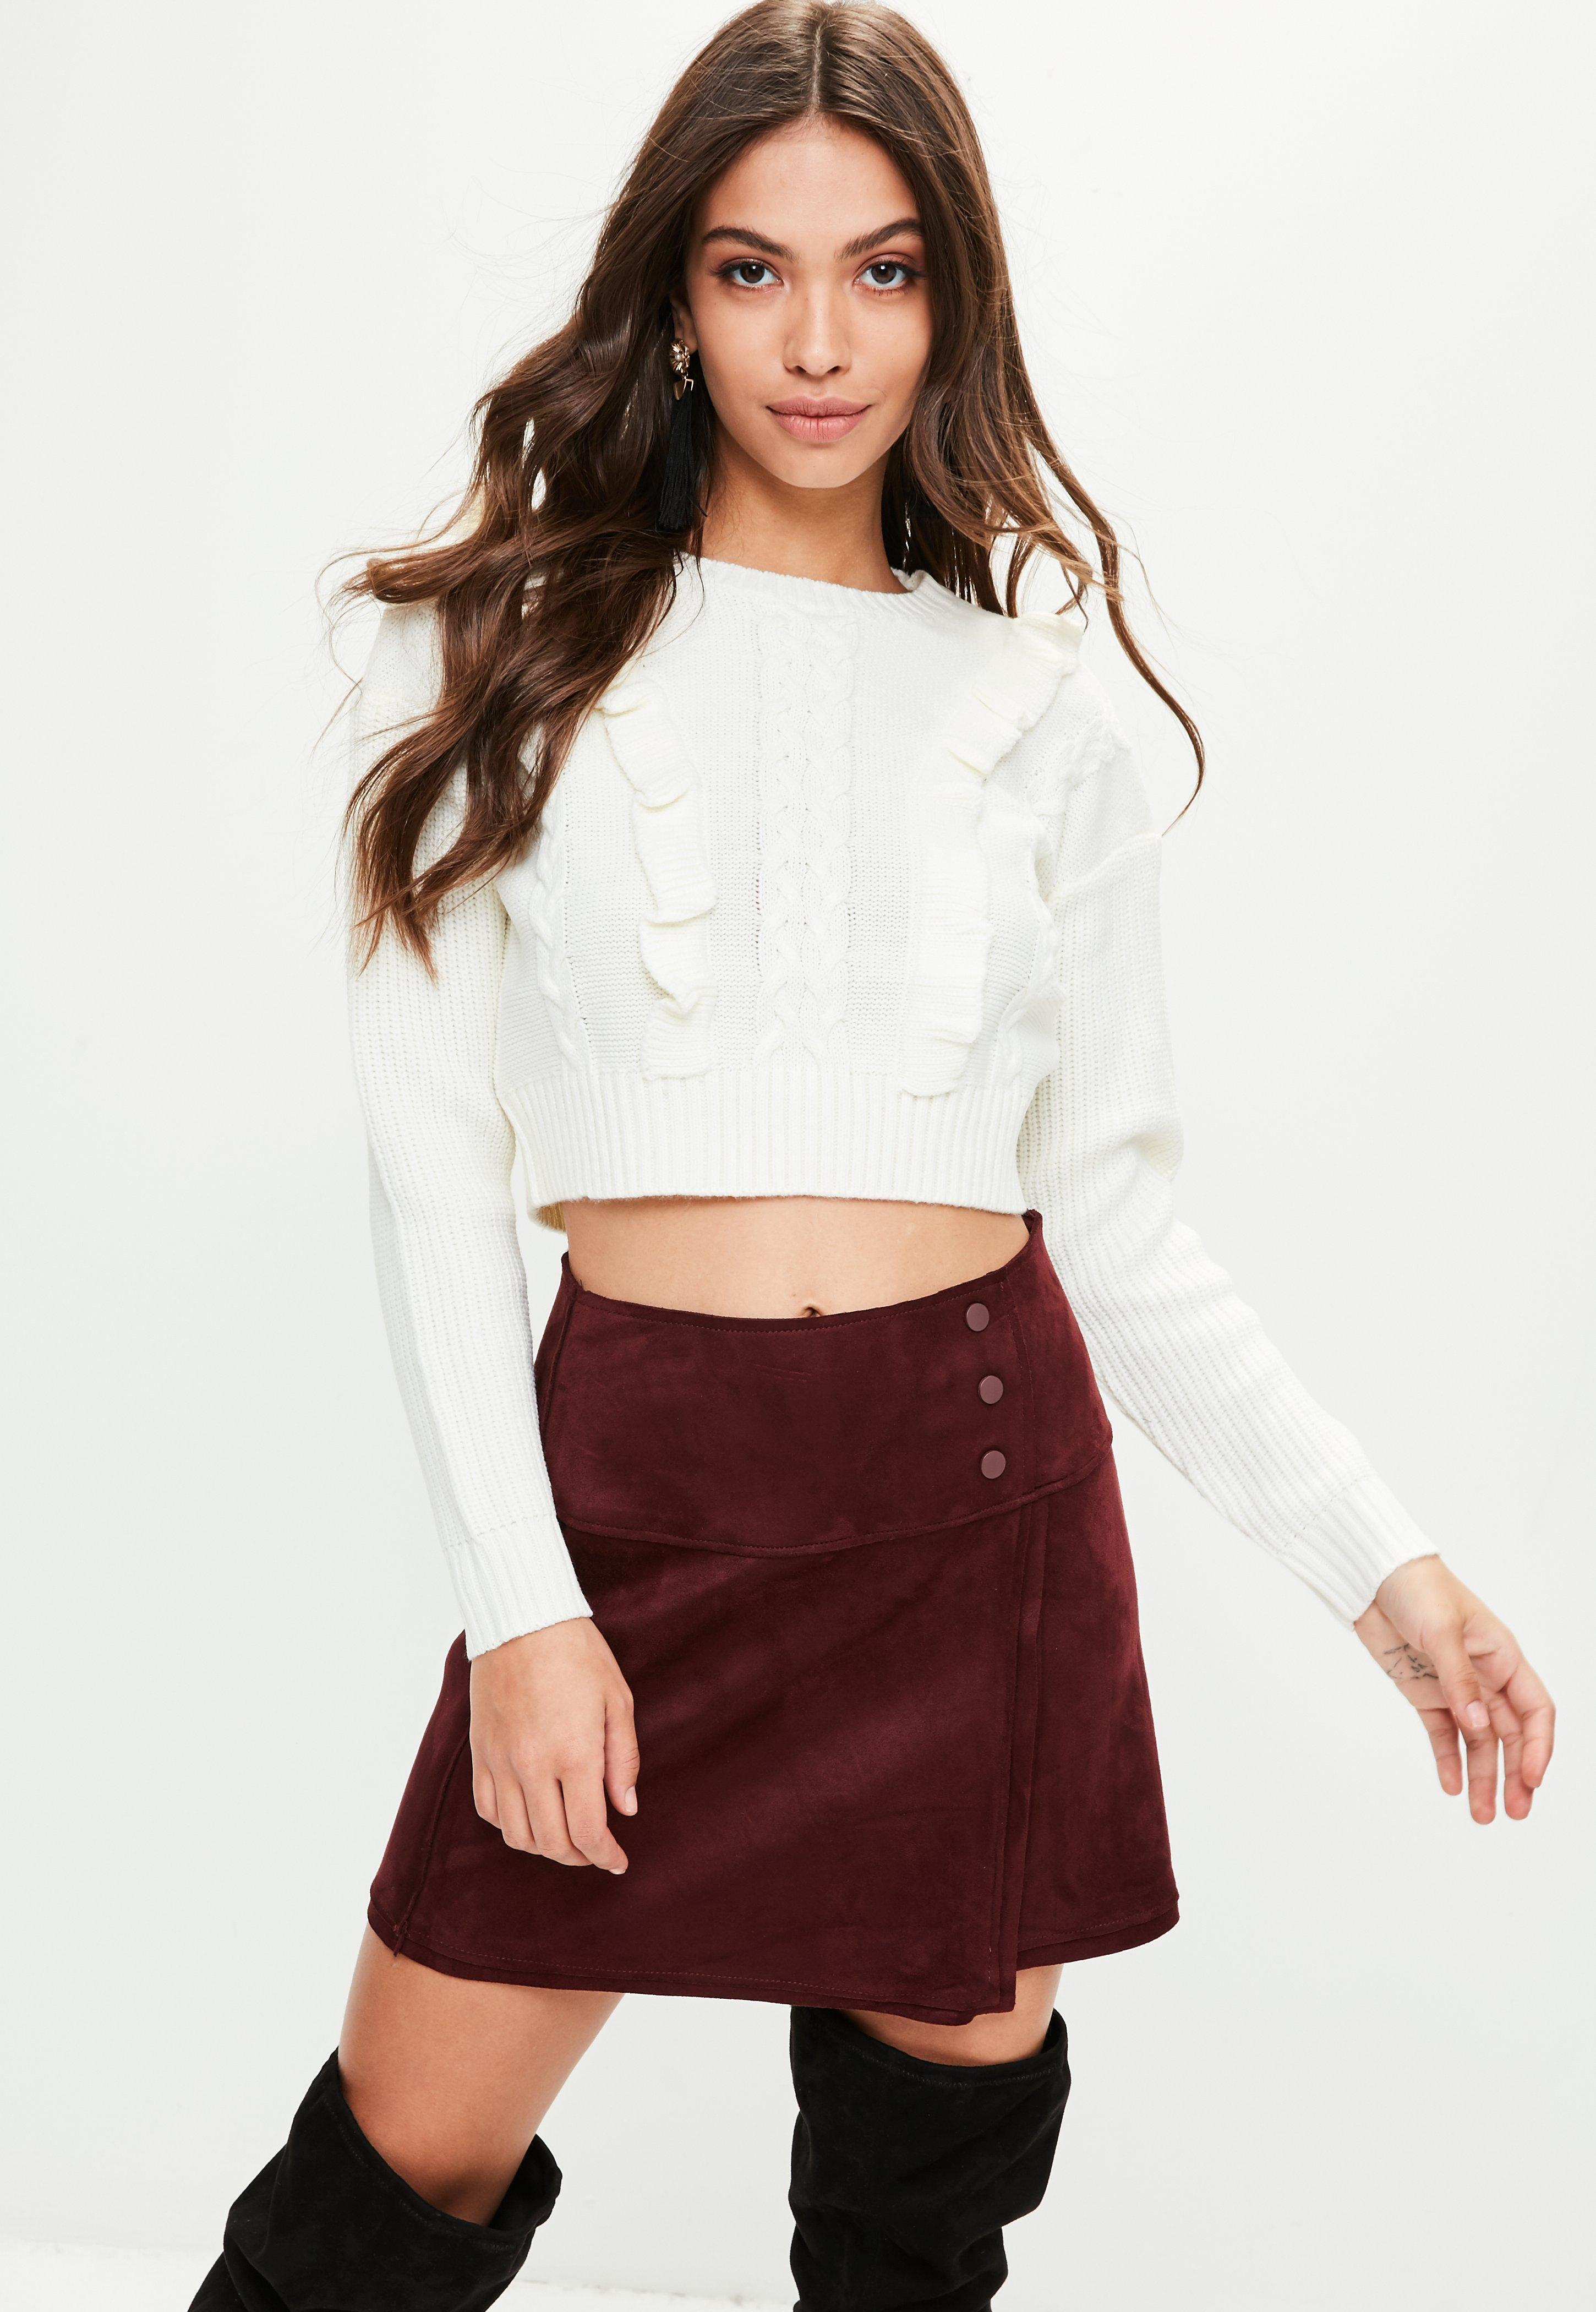 Cropped Sweaters - Knitted Crop Tops Online | Missguided